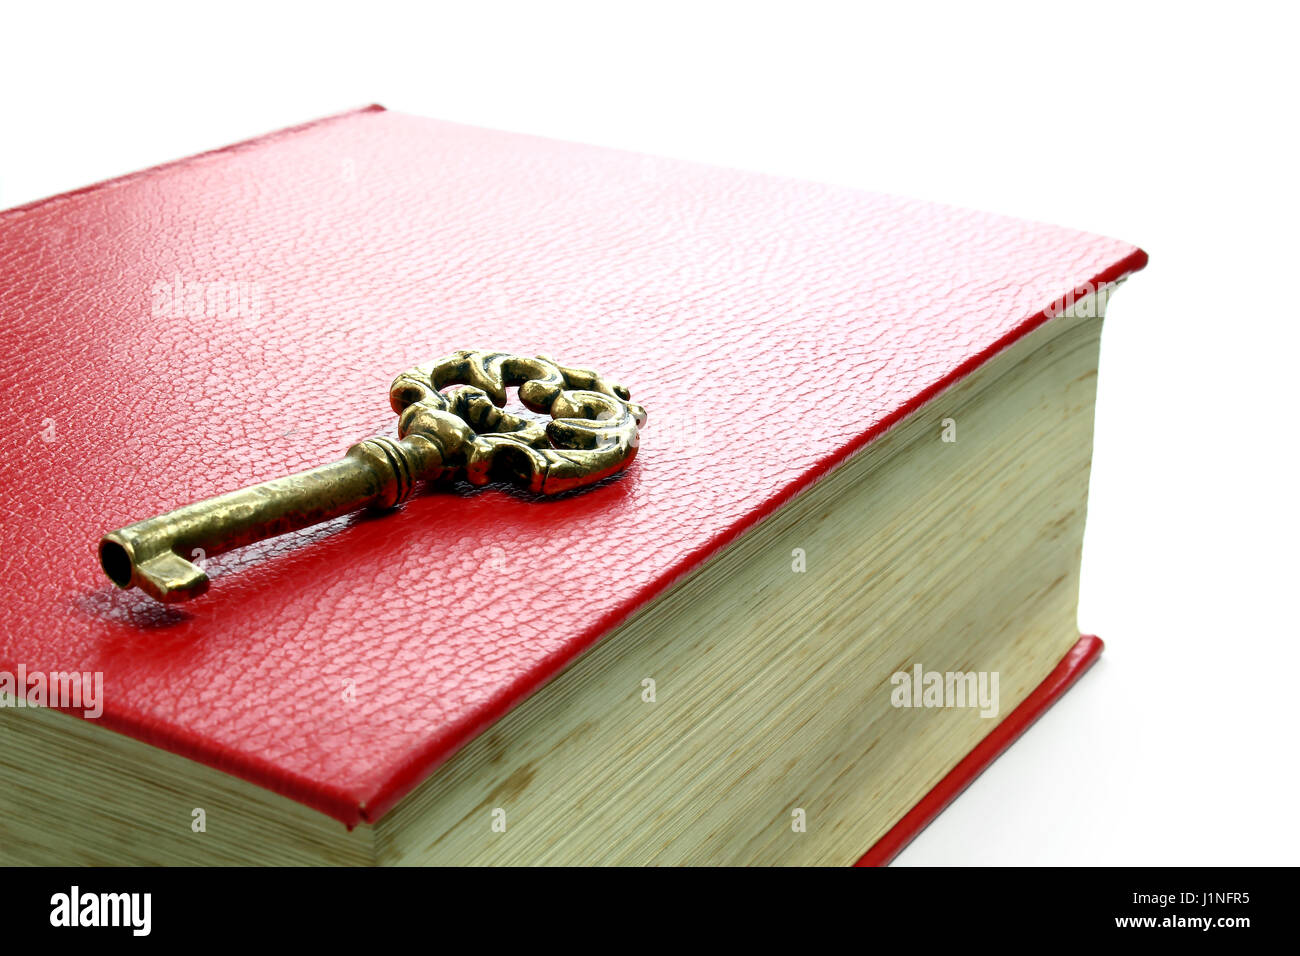 Key to knowledge - Stock Image